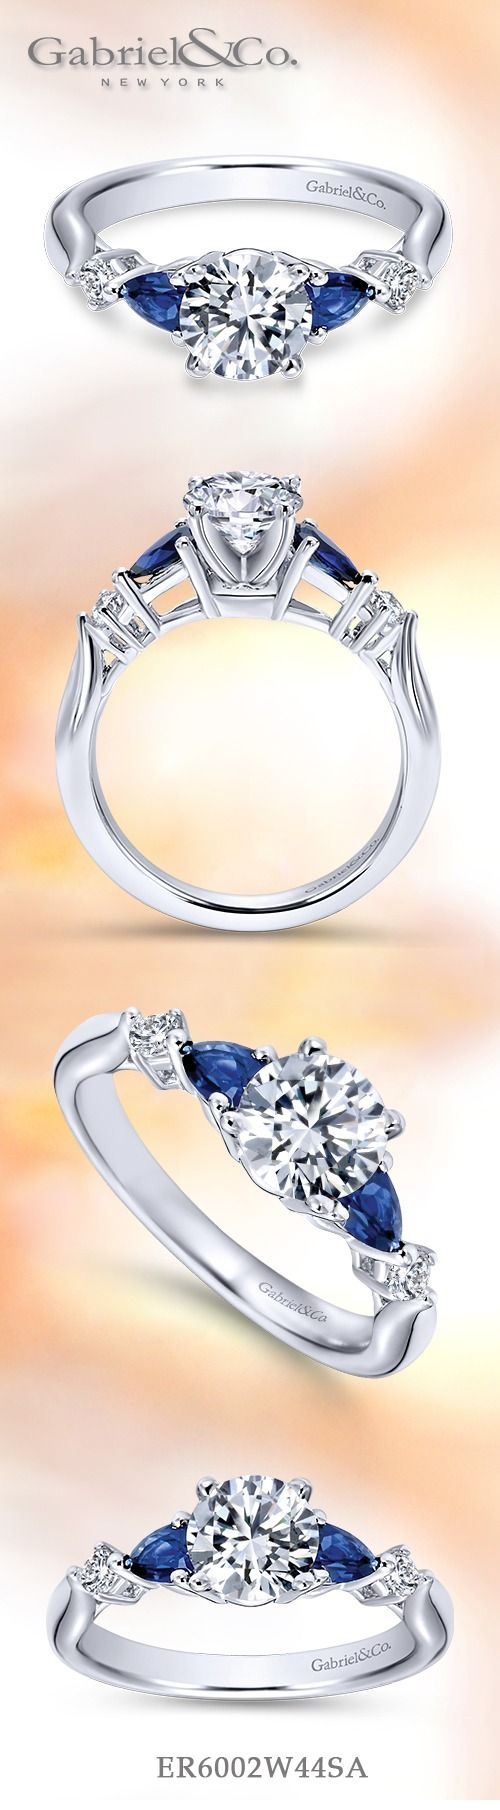 25 best ideas about Side stone engagement rings on Pinterest